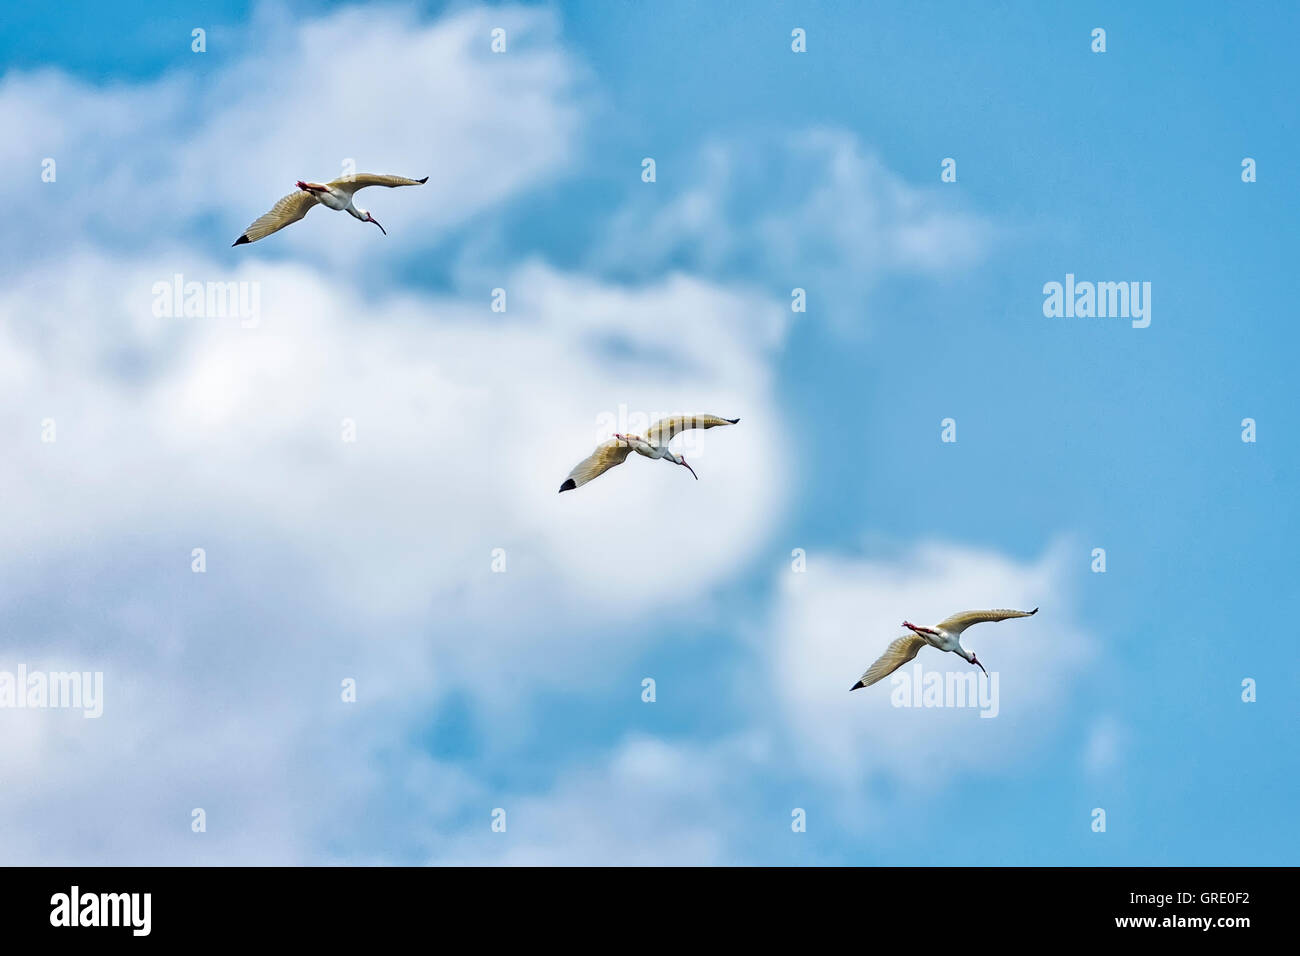 There white Ibis flying against a cloudy sky. - Stock Image